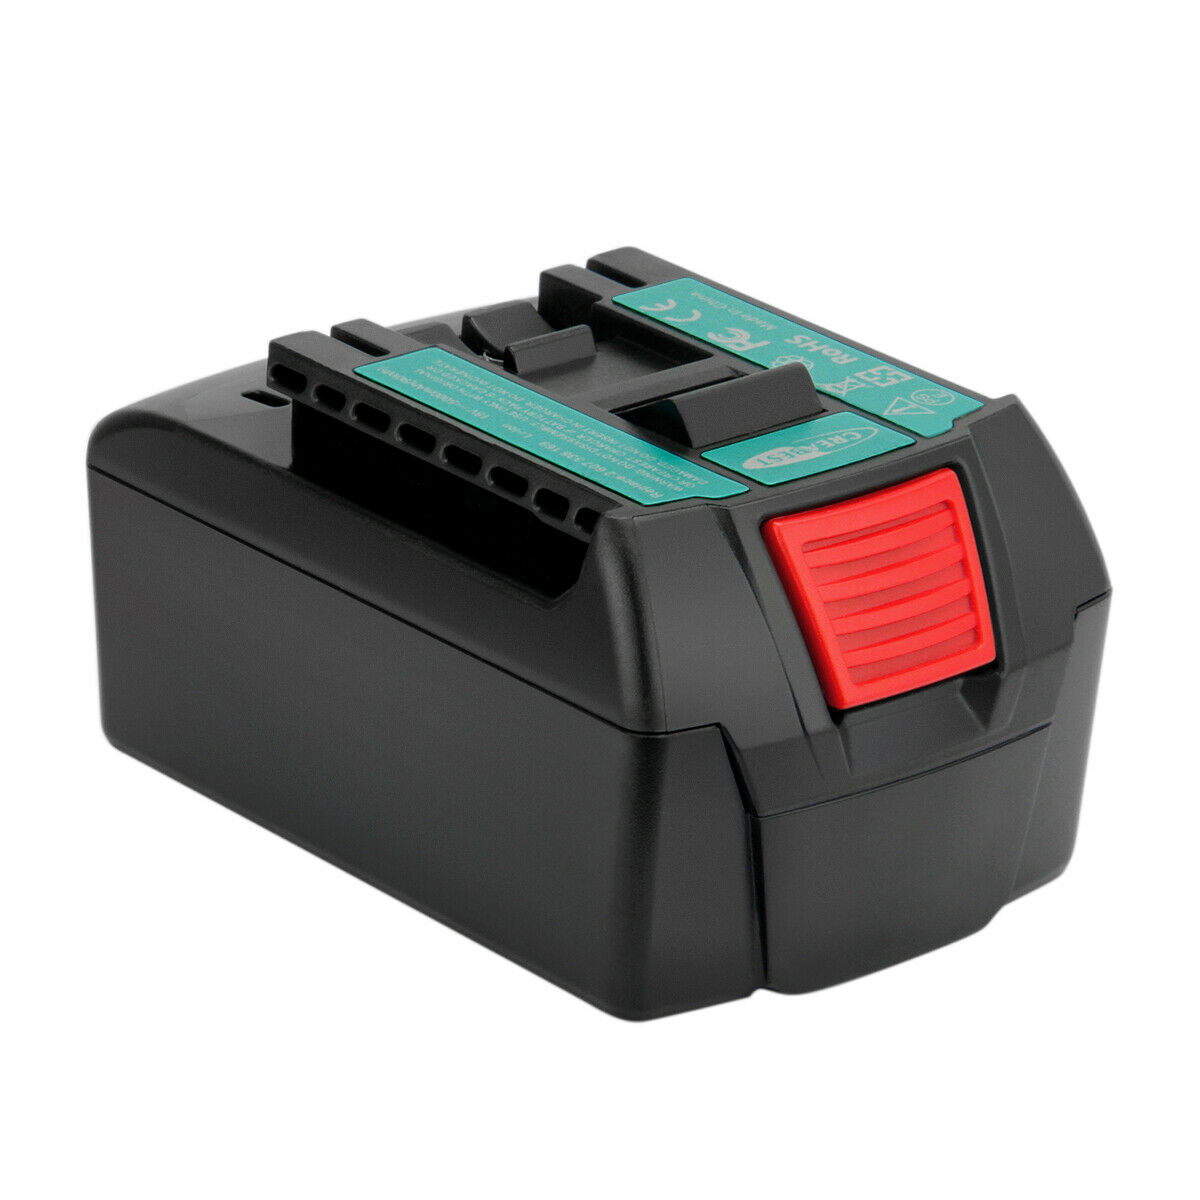 Bosch GSR 18 V-LIN,GSR 18-2LI,GST 18 V-LI replacement battery